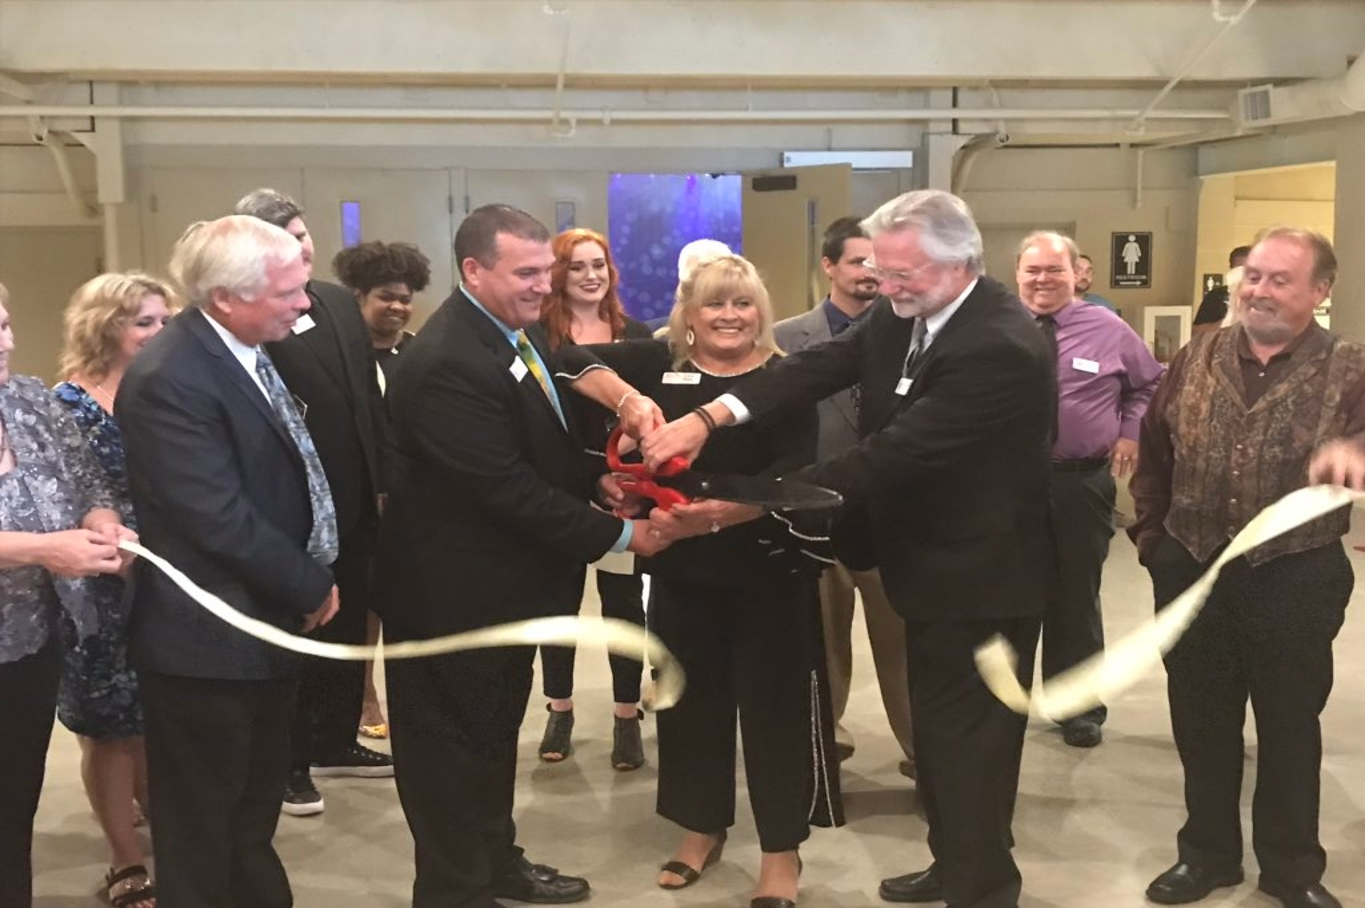 Ribbon cutting at new music center